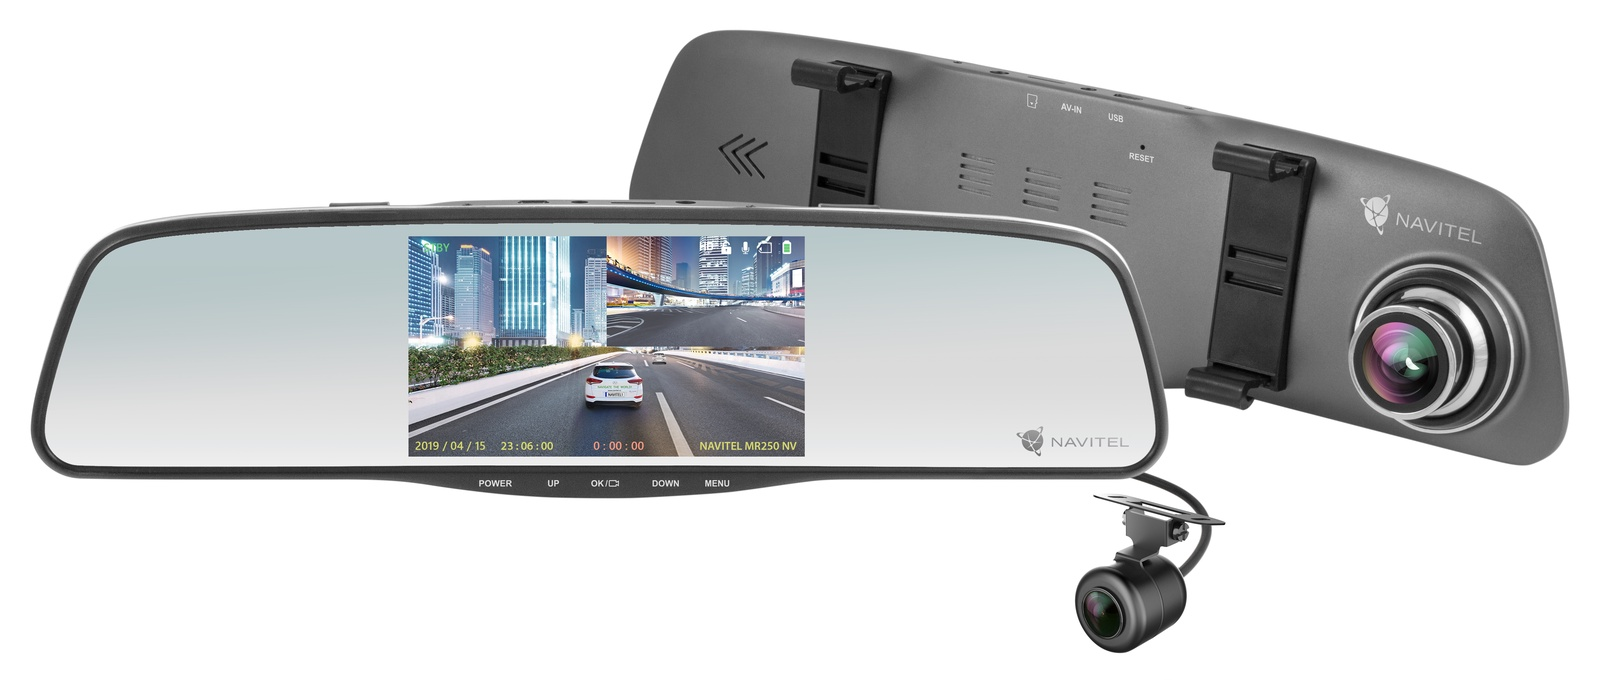 Видеорегистратор-зеркало Navitel MR250 NV, серый металлик 4 3 inch motion detection peephole viewer ir night vision video door phone